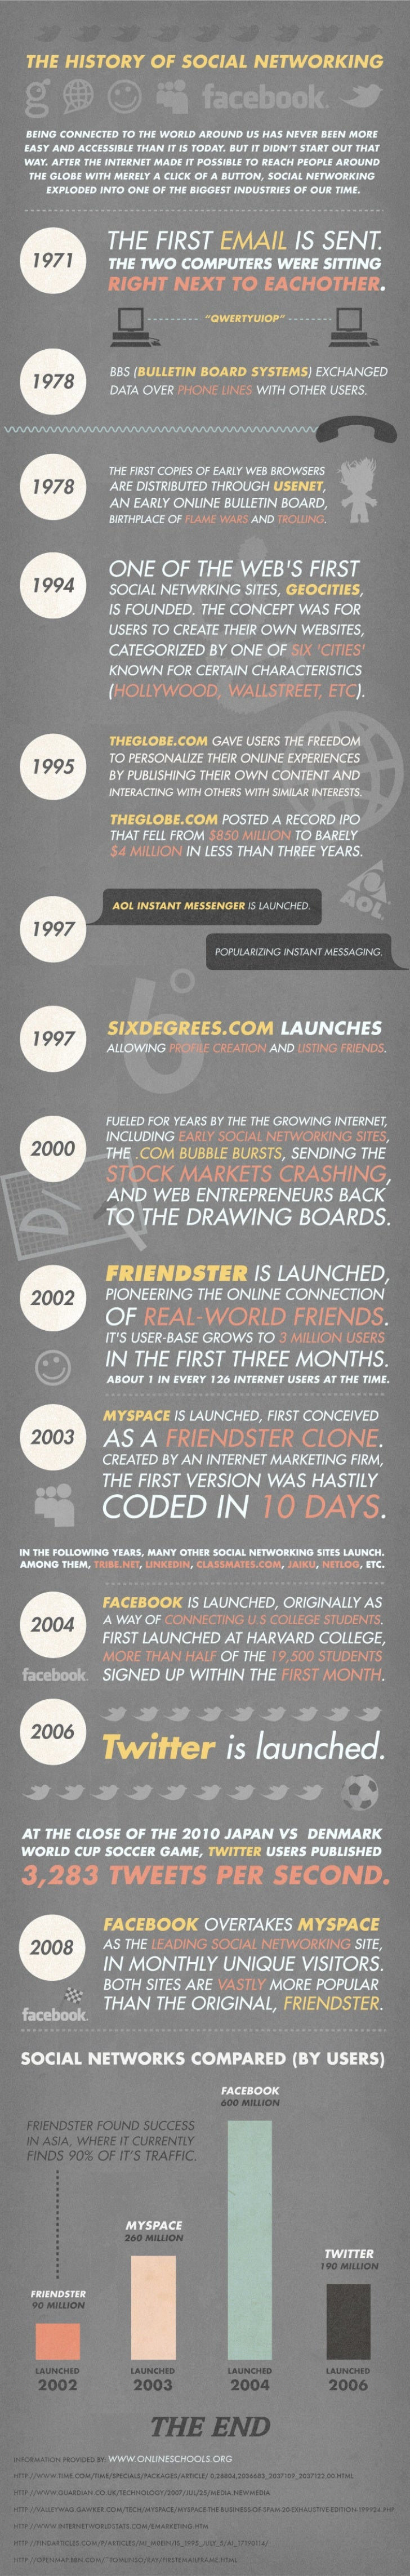 2012 History of Social Networking Infographic